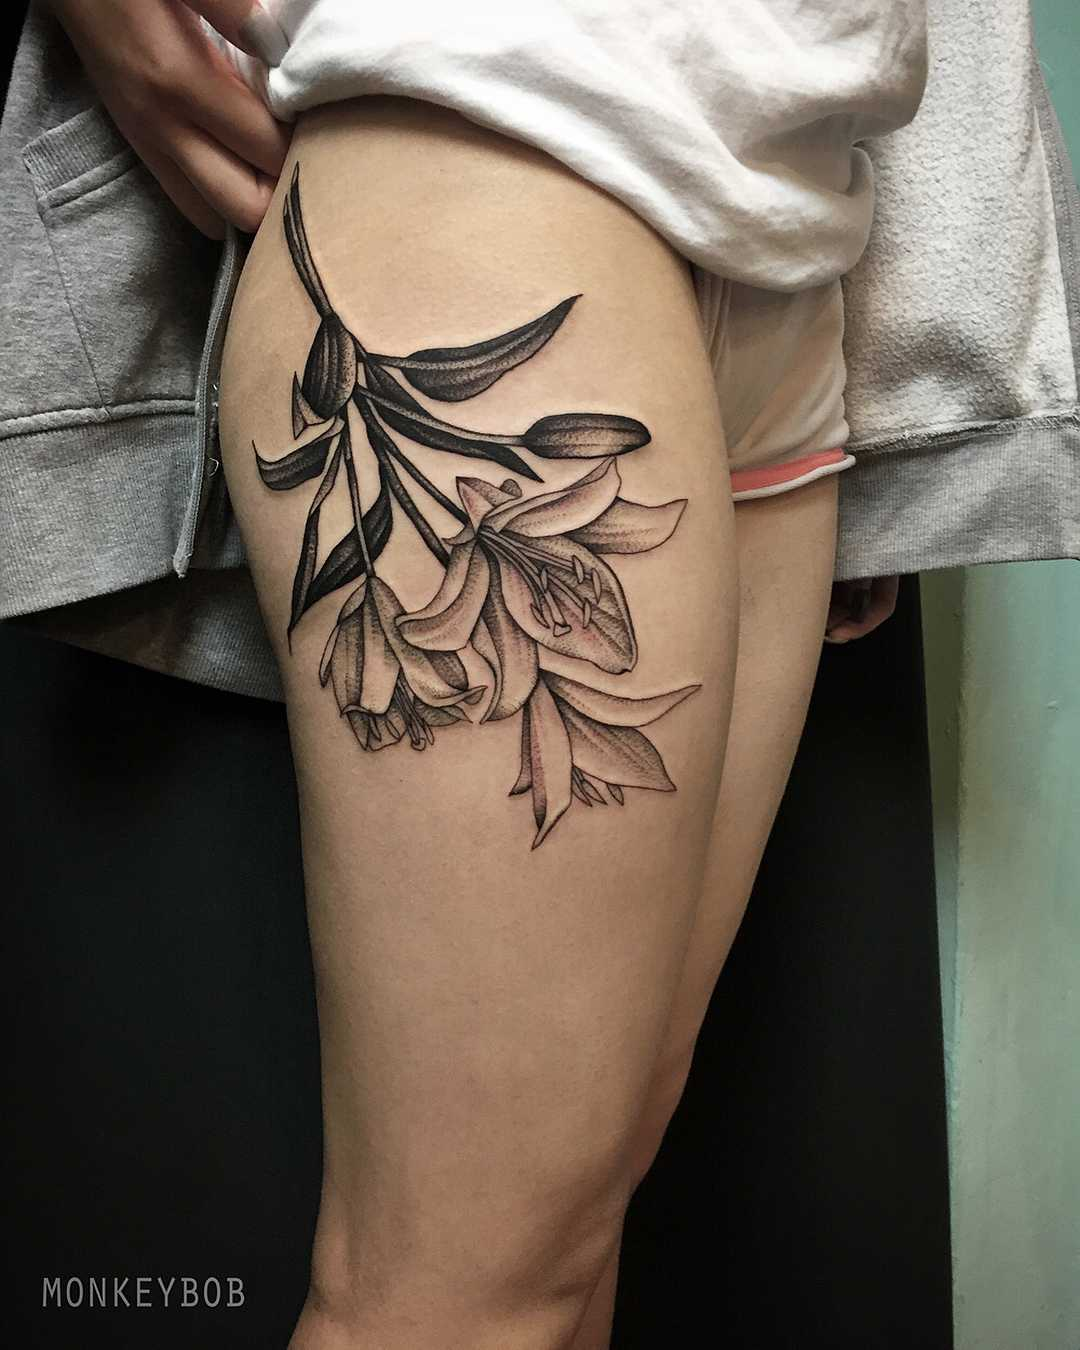 Lillies tattoo on the thigh